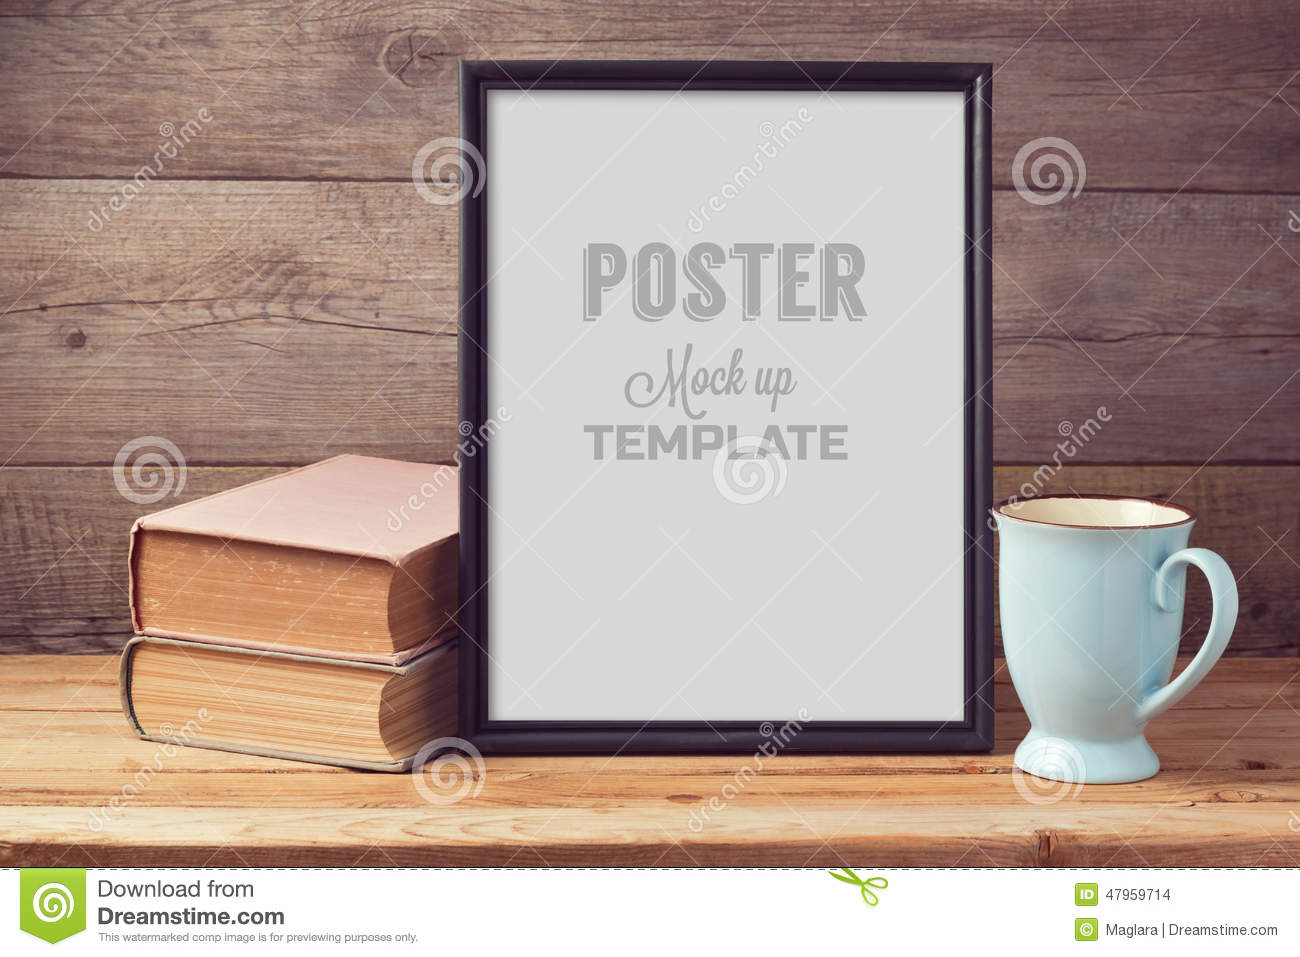 Poster mock up template with old books and coffee cup